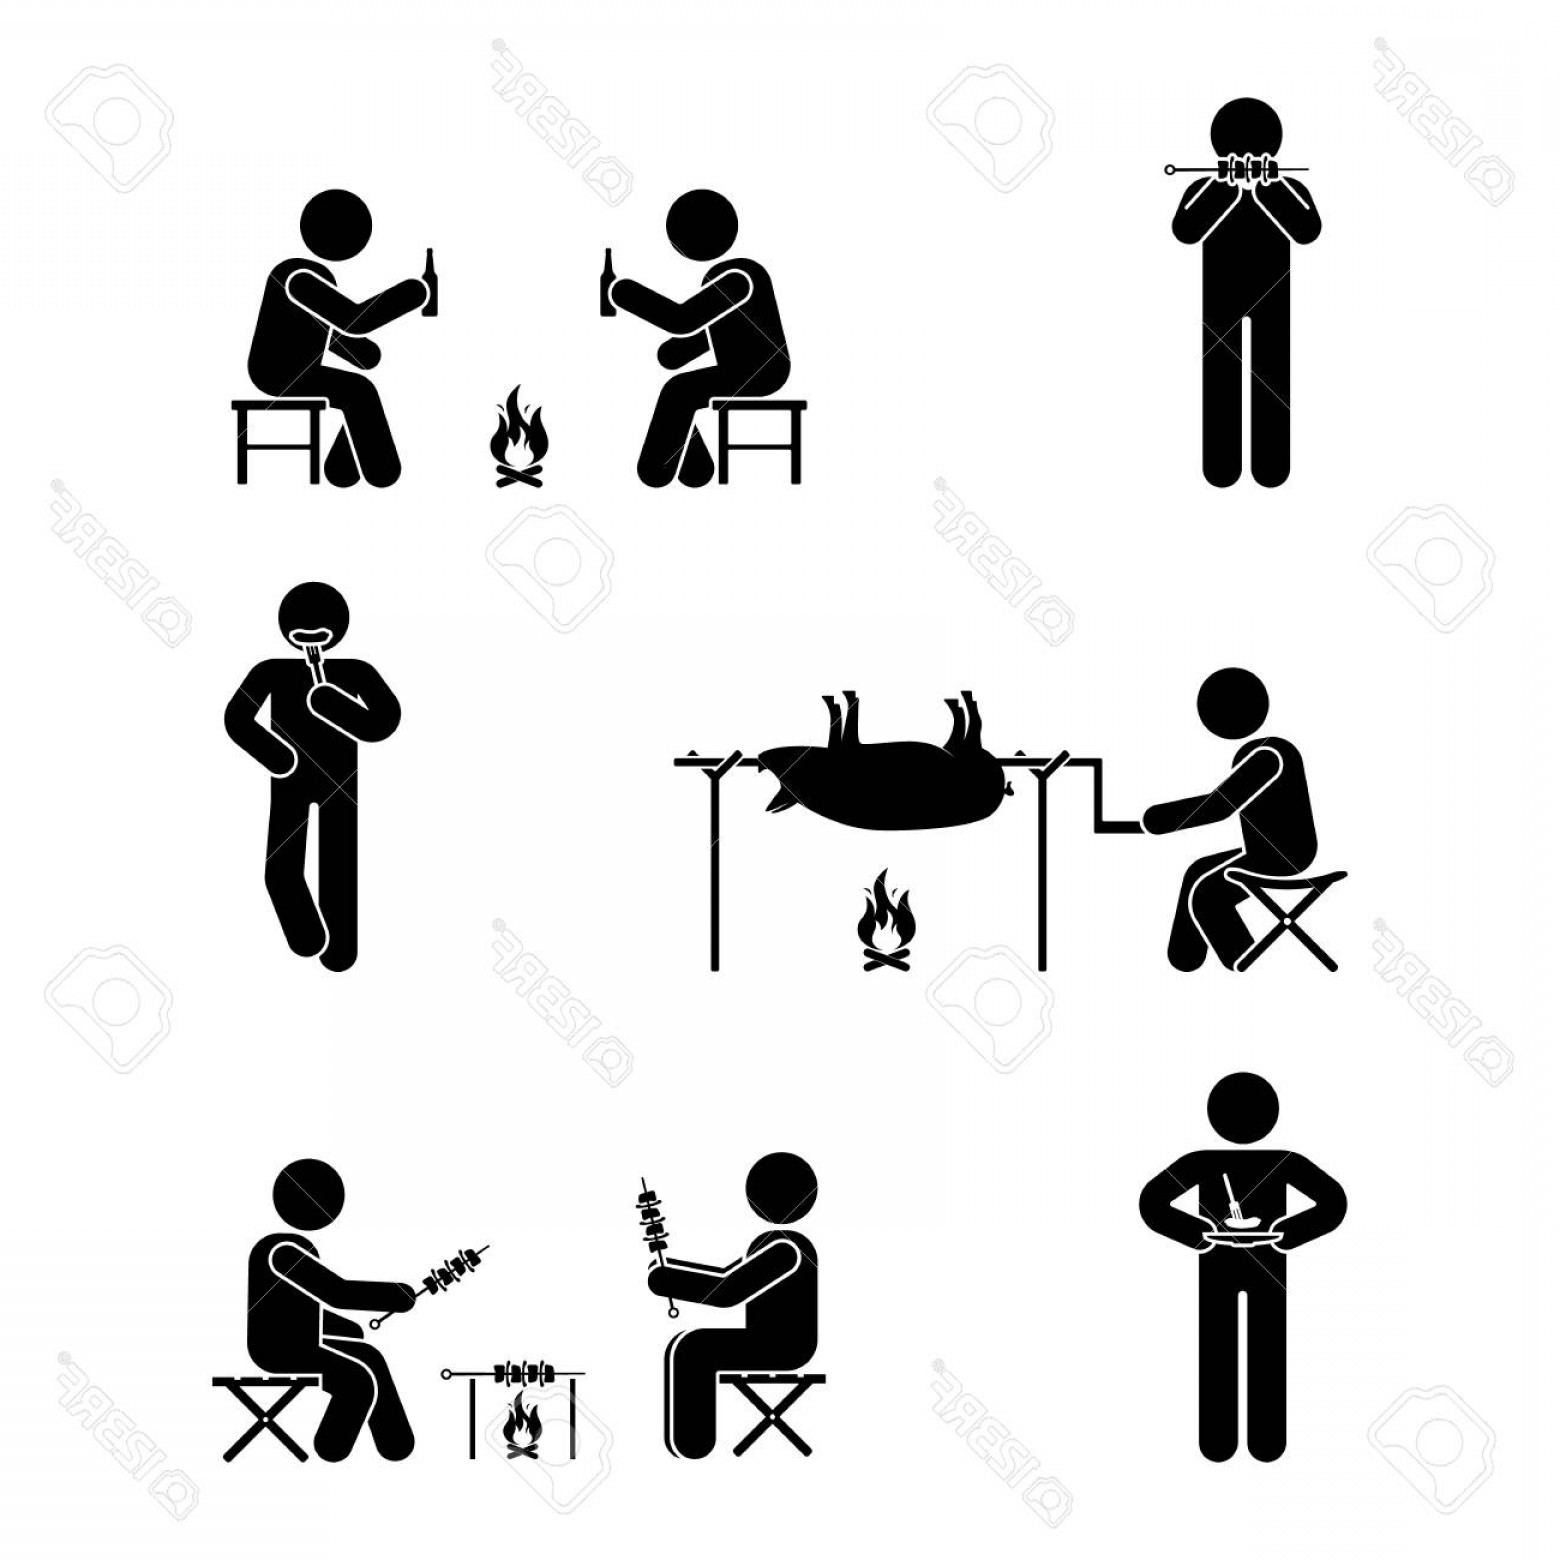 Stick Figure Positions Vector Set: Photostock Vector Stick Figure Picnic Set Vector Illustration Of Barbecue Position Pictogram